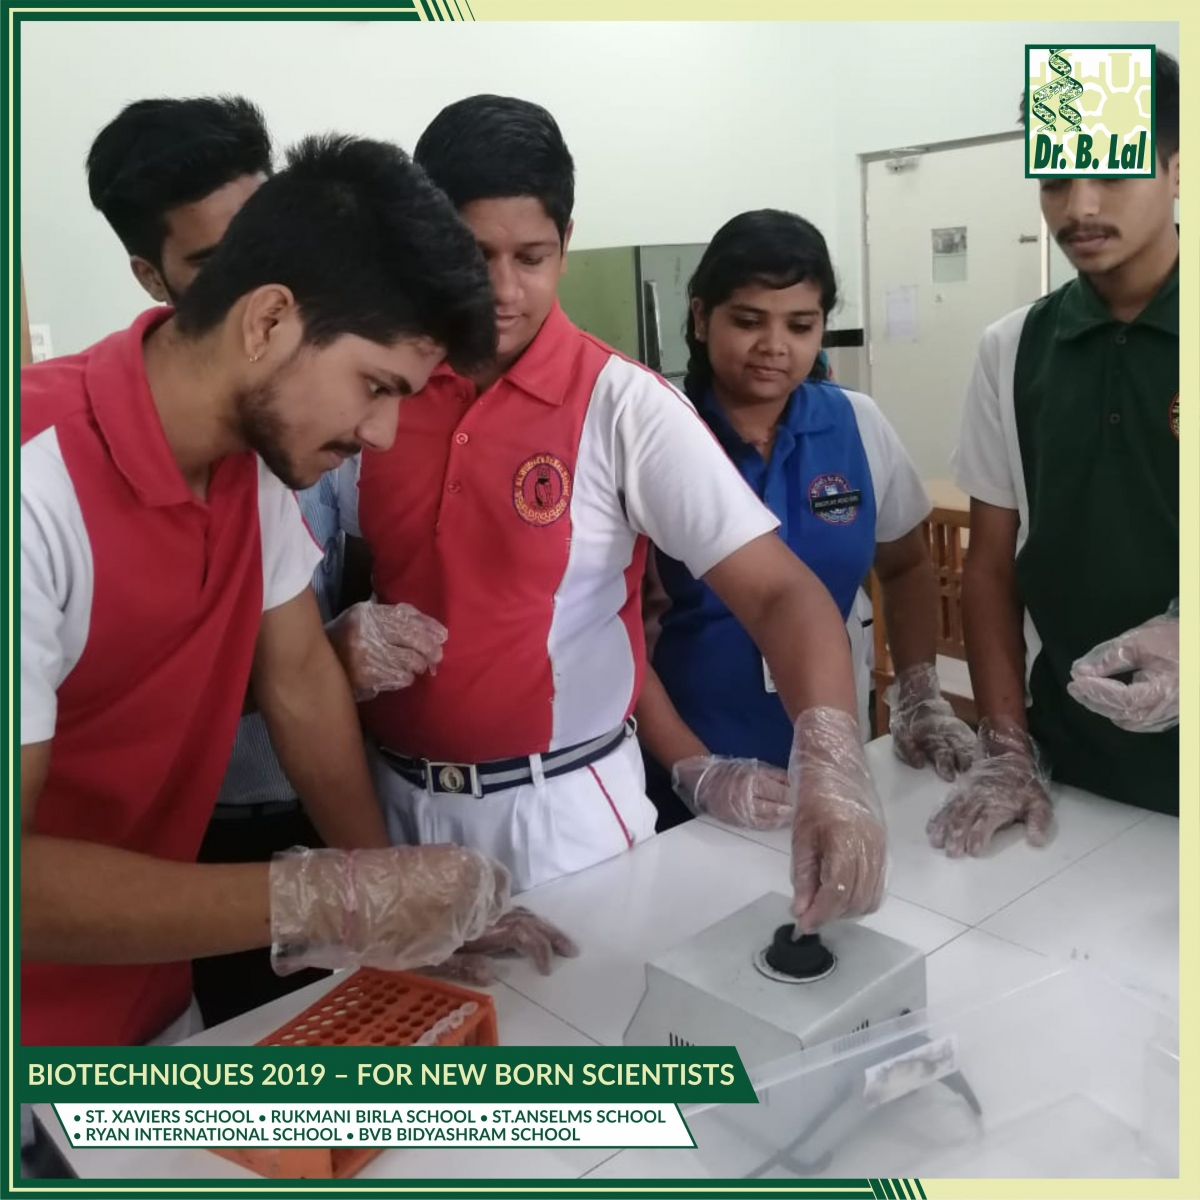 Biotechniques 2019 – For New Born Scientists